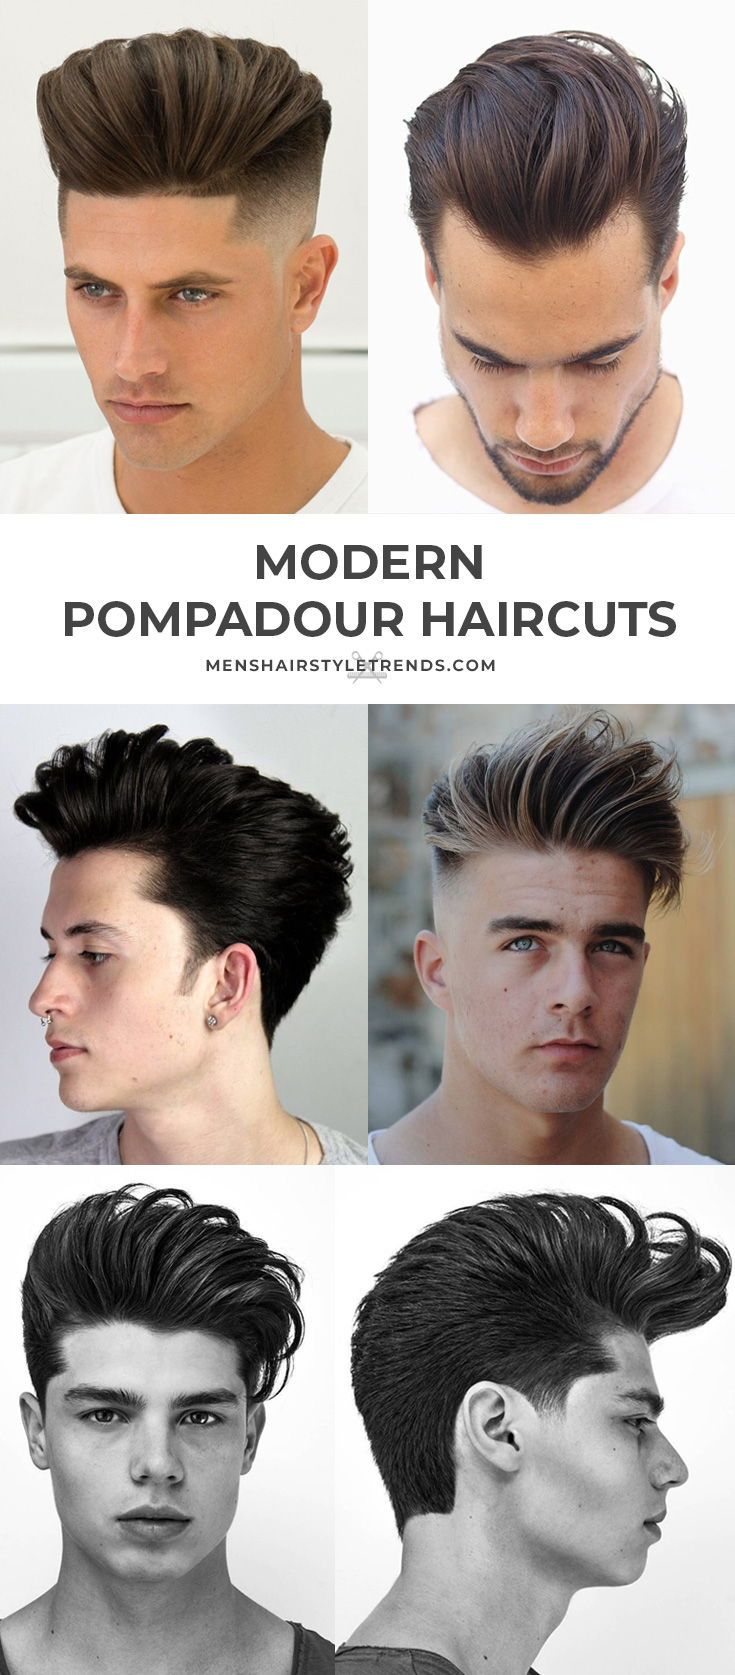 70 Pompadour Haircuts Ultimate Guide To Classic Modern Styles 2020 Pompadour Haircut Pompadour Hairstyle Mens Hairstyles Pompadour